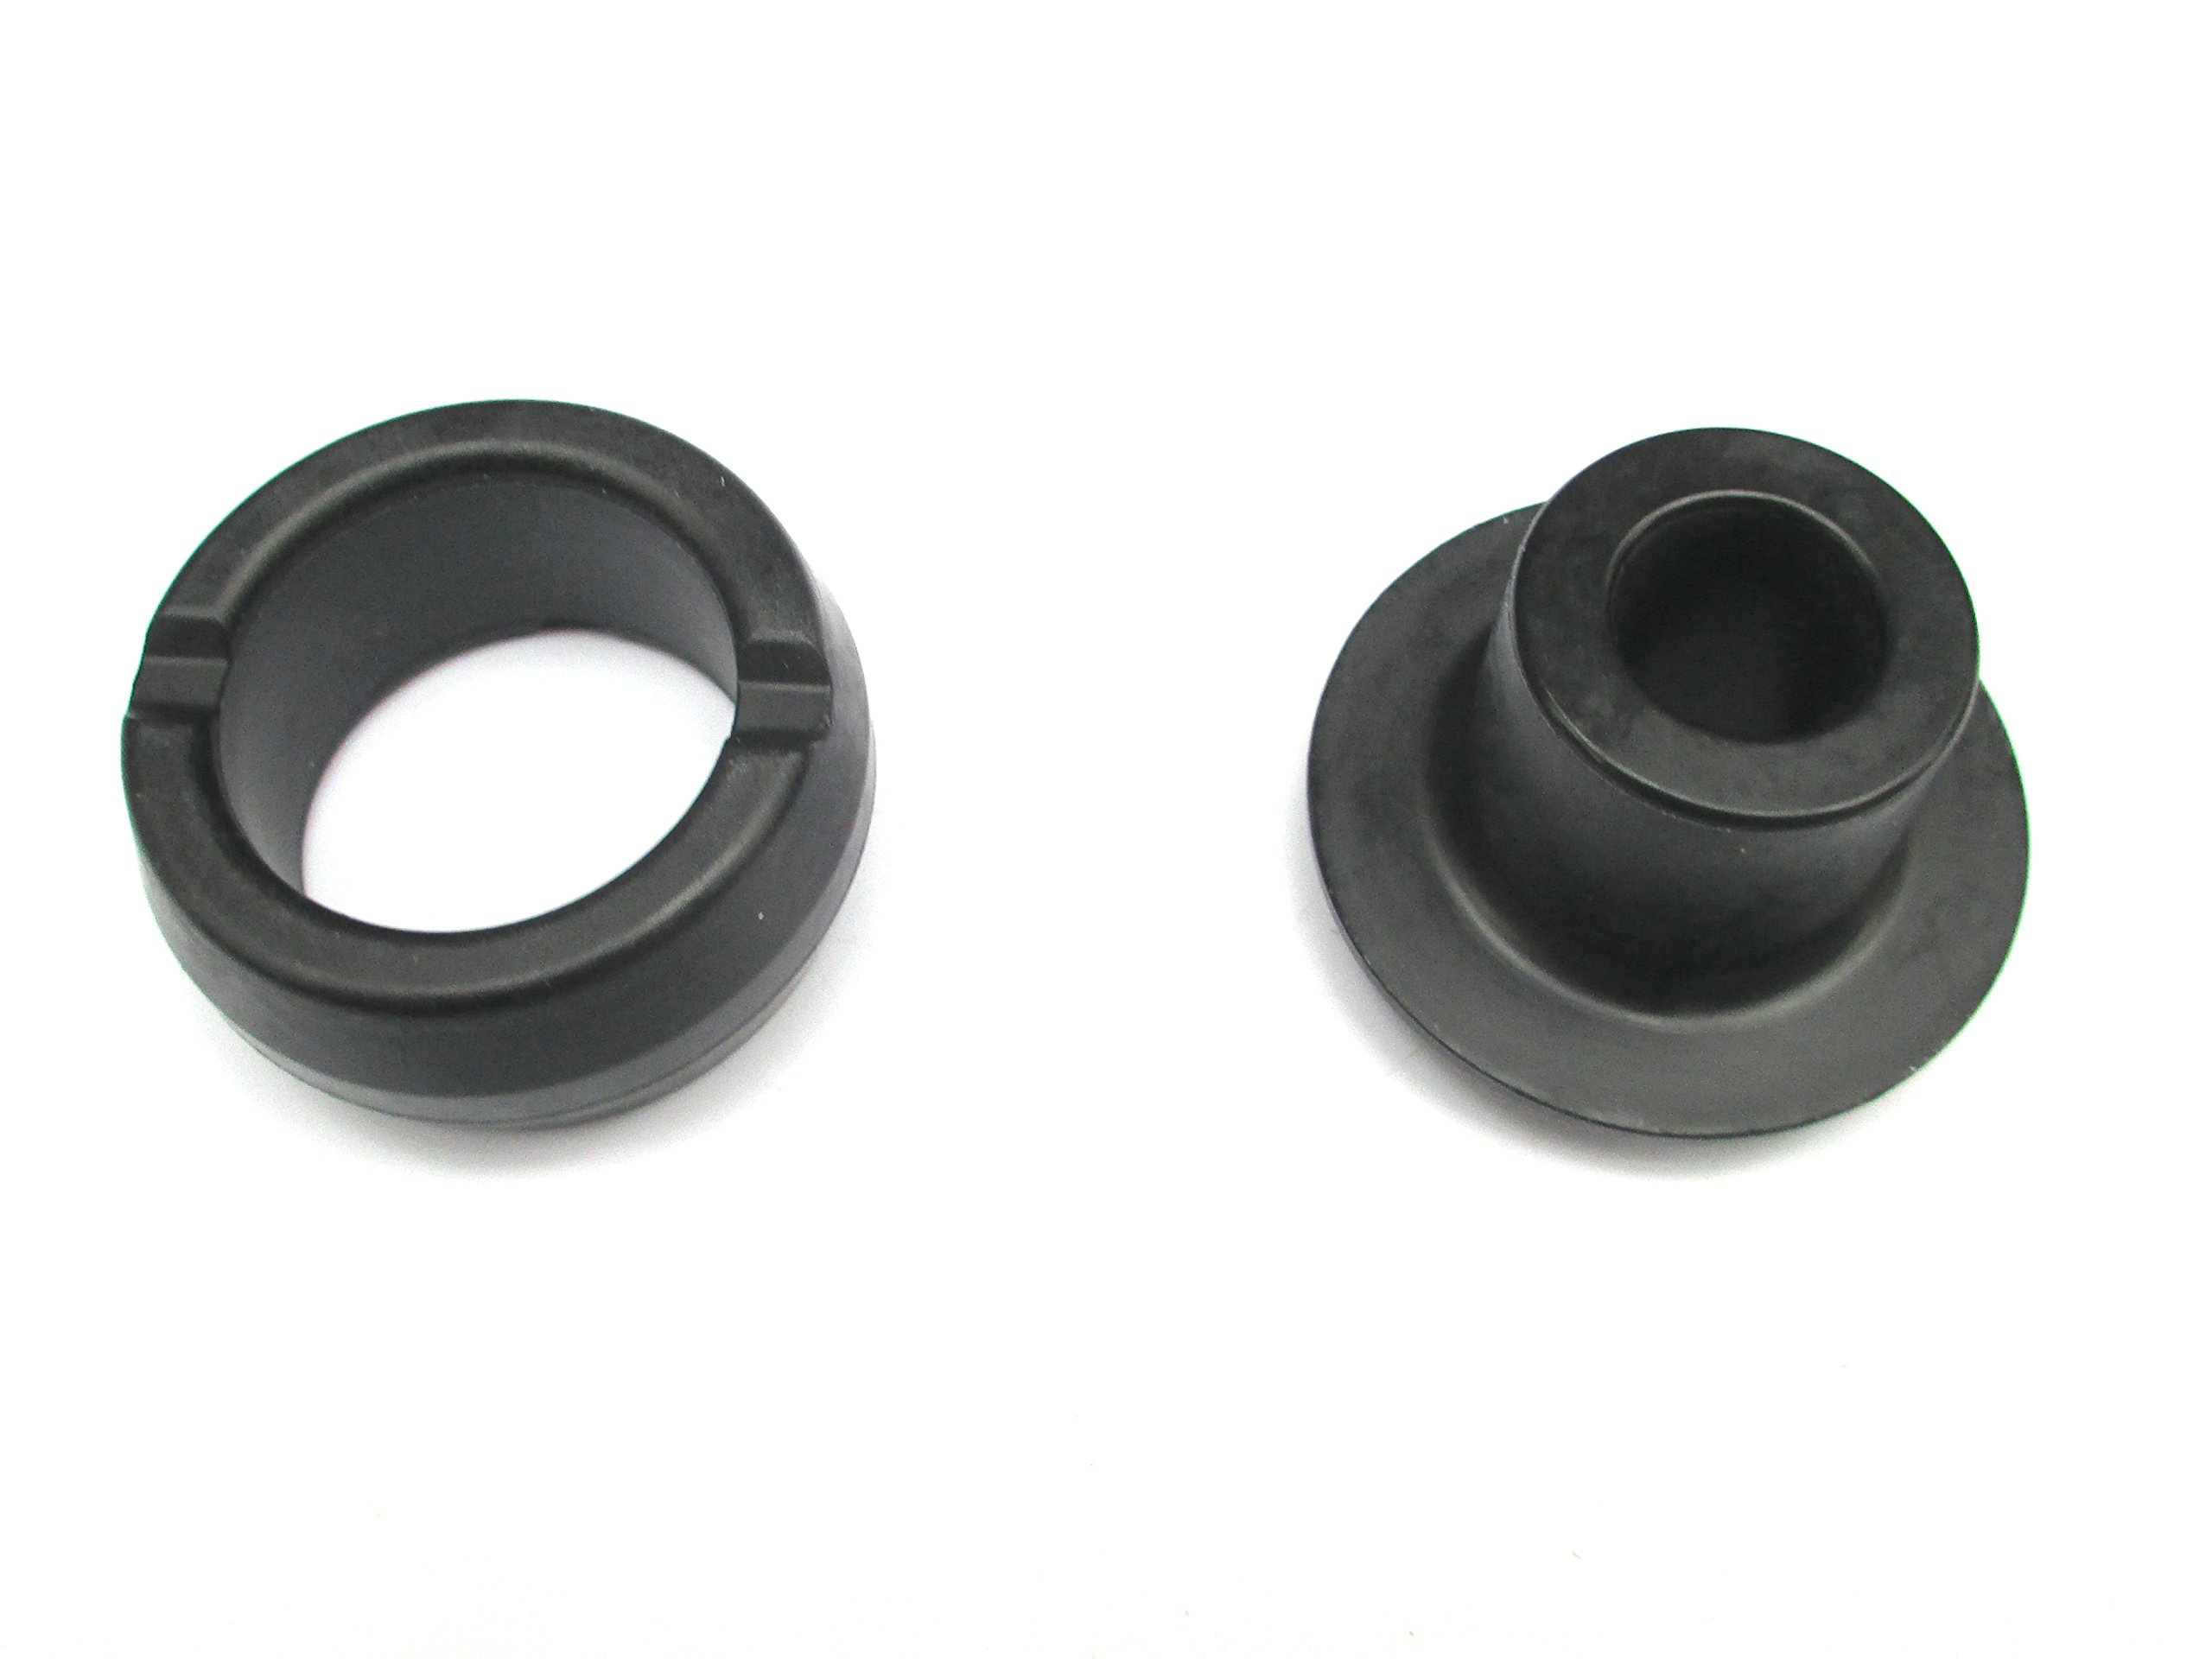 Replacement Bumper Kit # N70157-N70156 for Bostitch N80CB Nailer